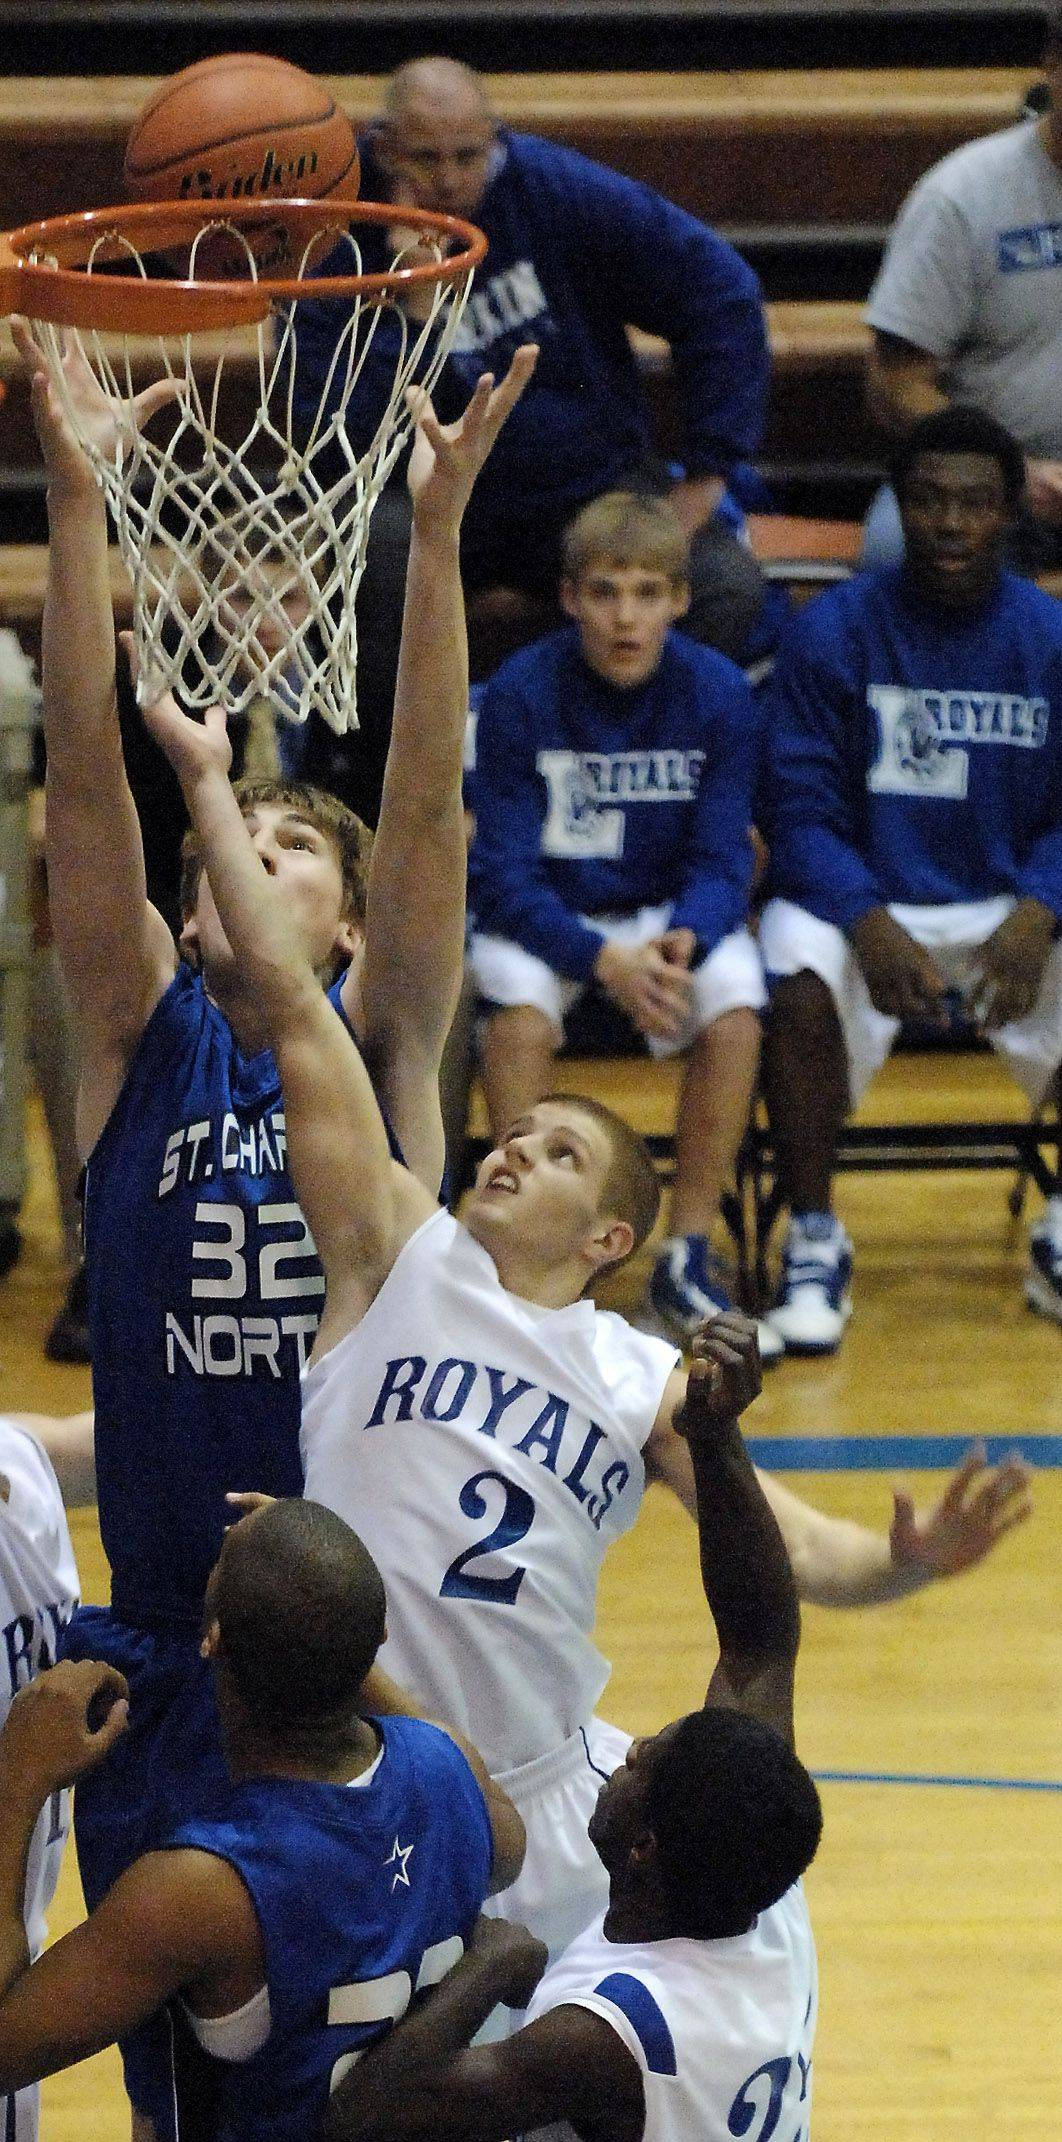 Images from the St. Charles North vs. Larkin boys basketball game Thursday, December 16, 2010.